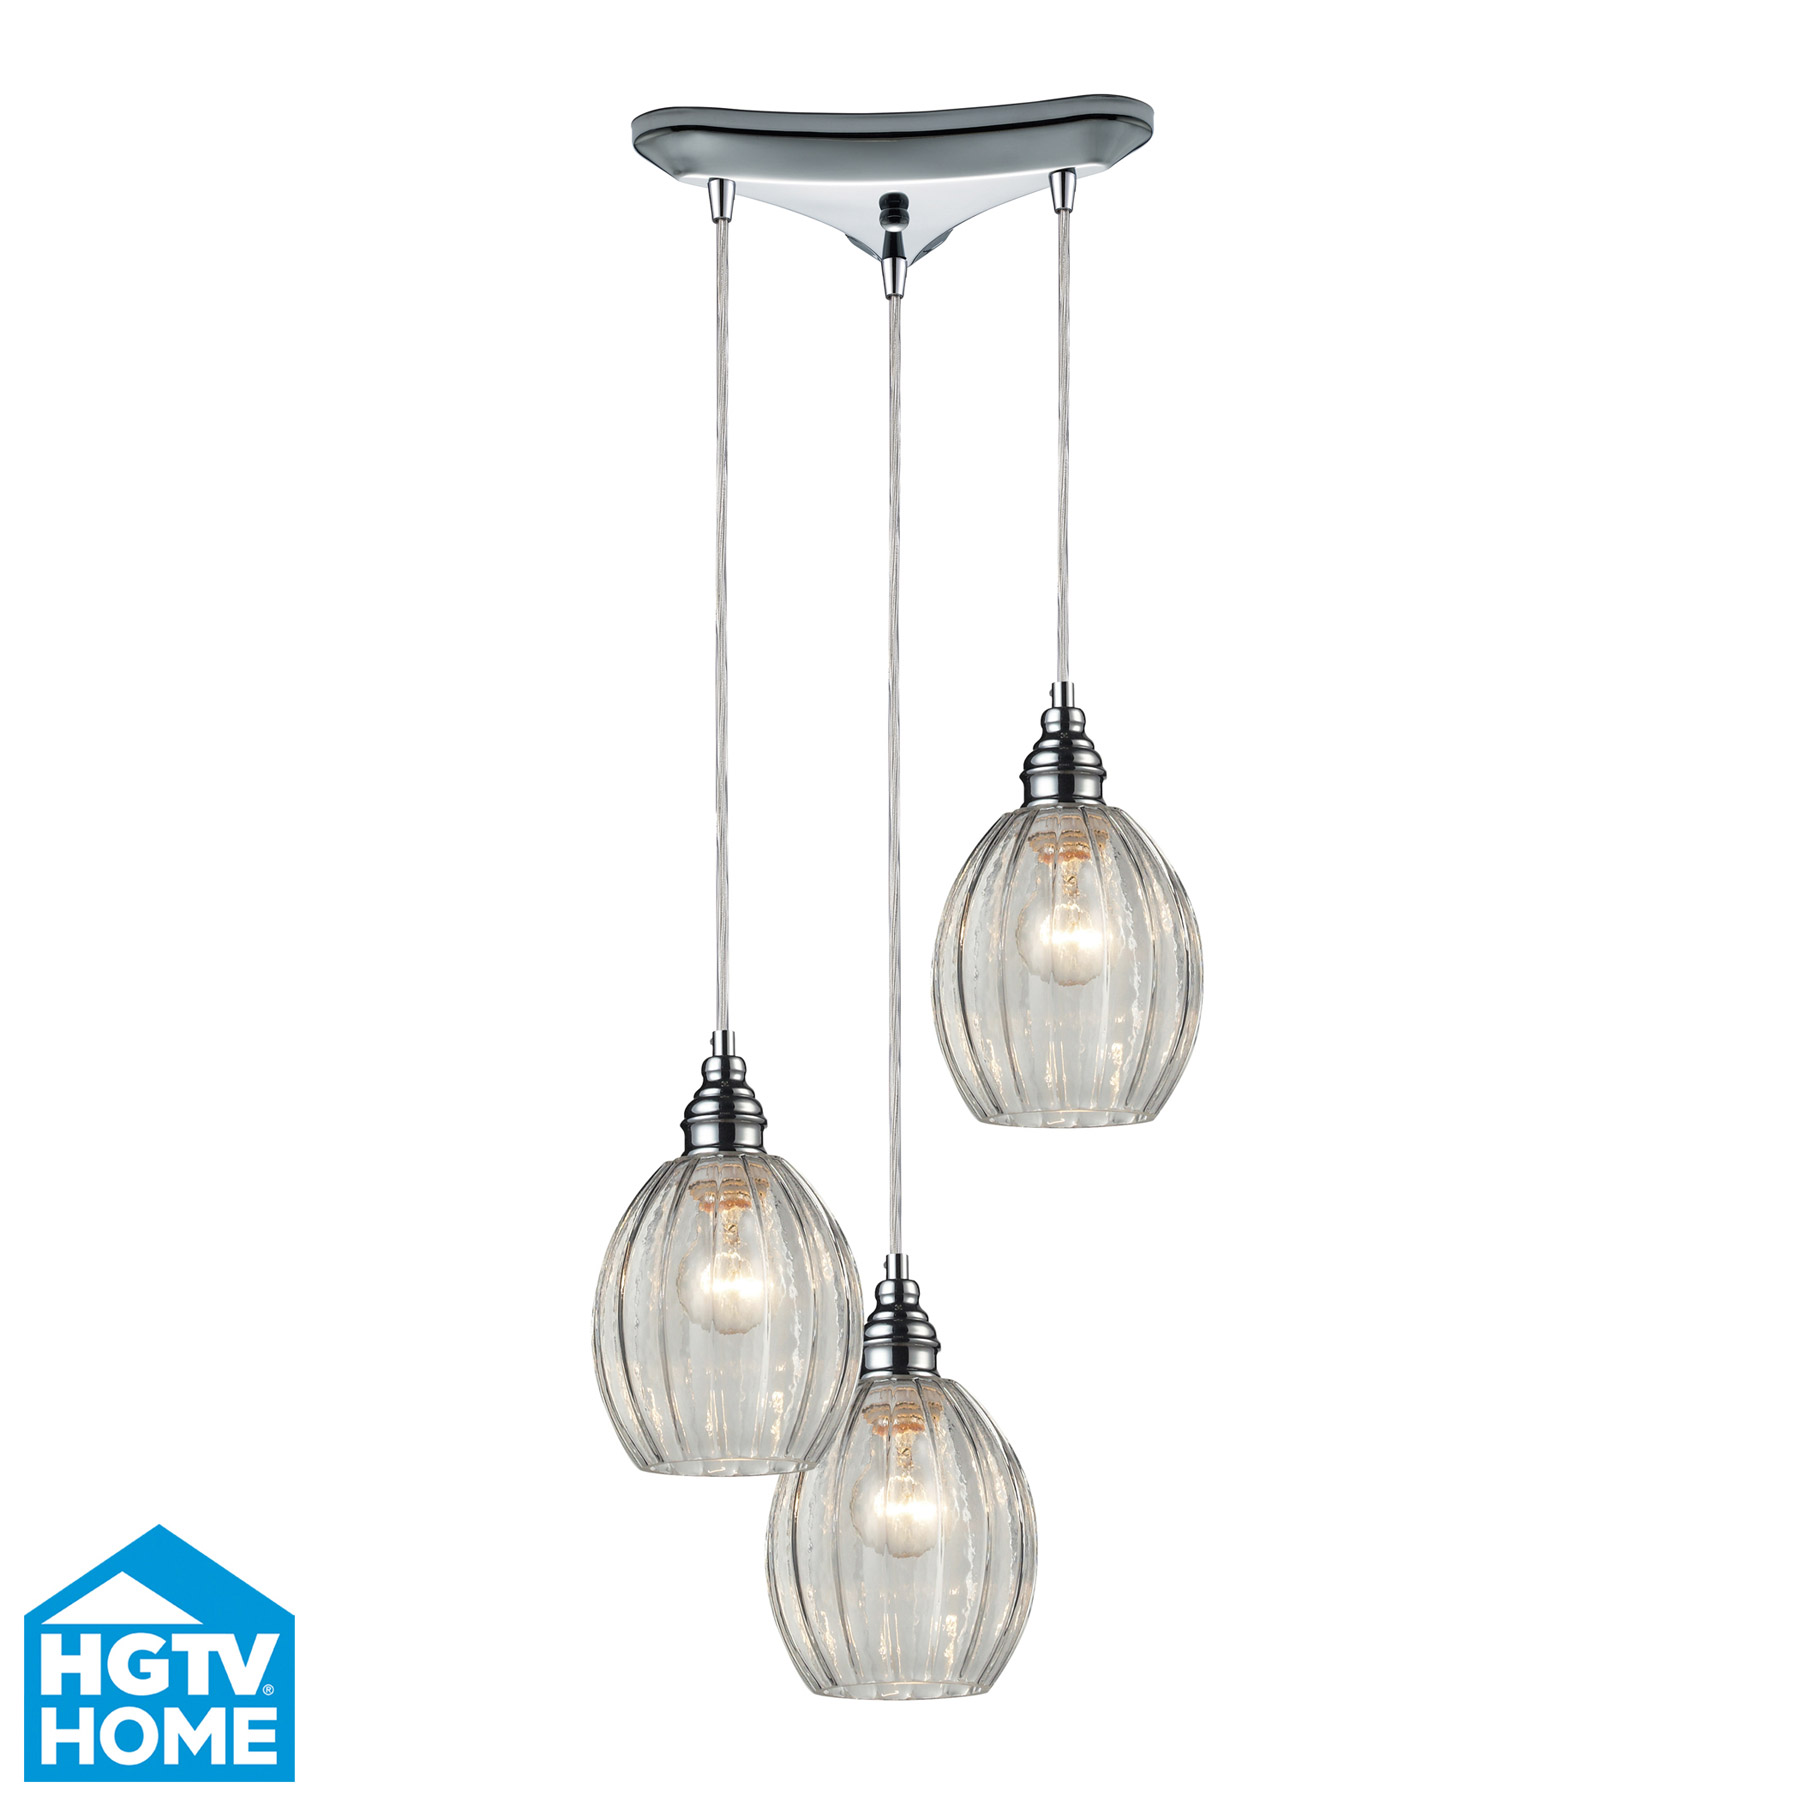 Elk Lighting 46017/3 Danica 3 Light Multi Pendant Ceiling